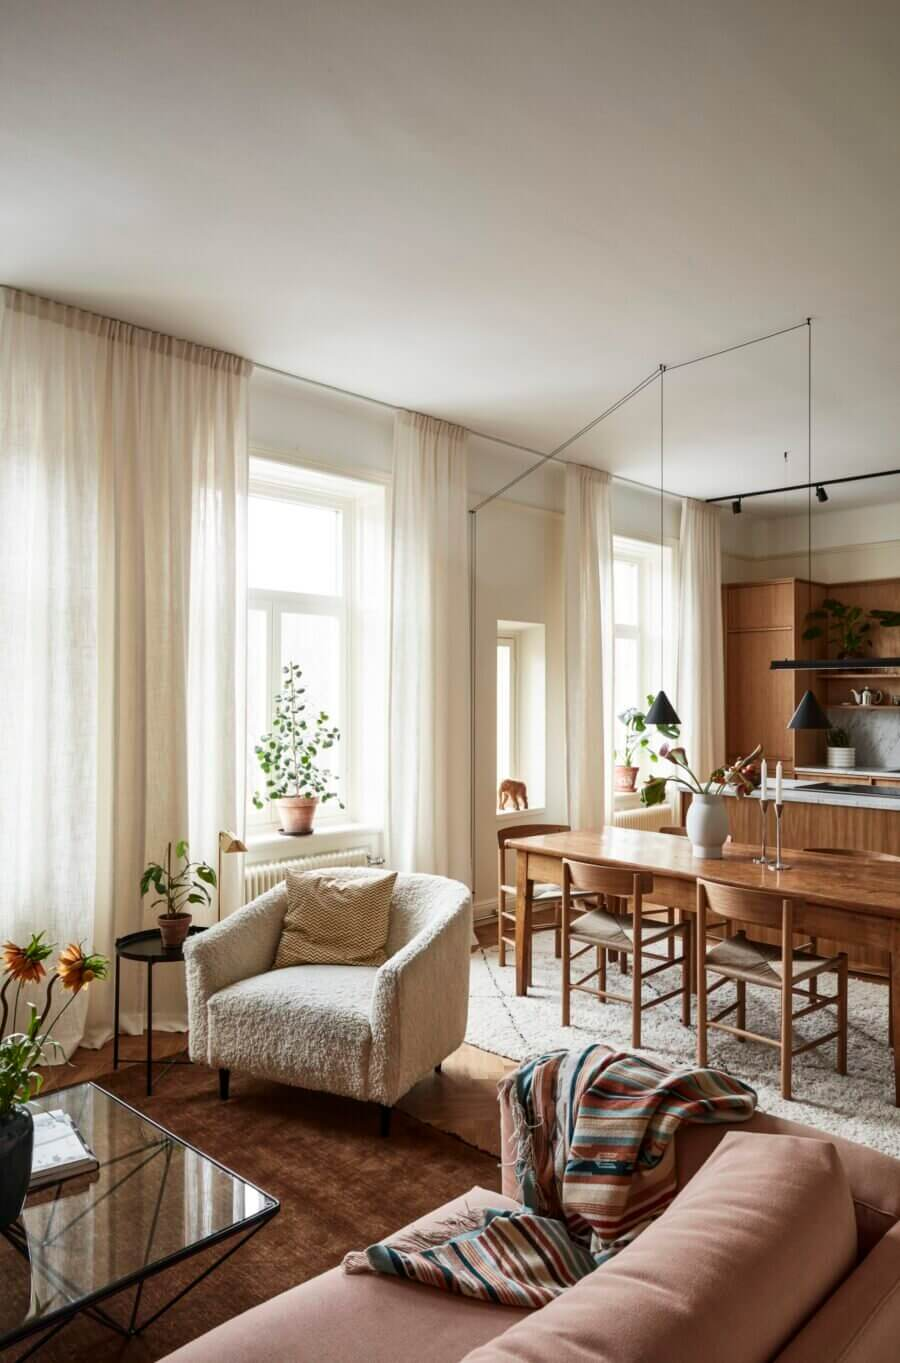 A Warm Stockholm Apartment with Oak Touches